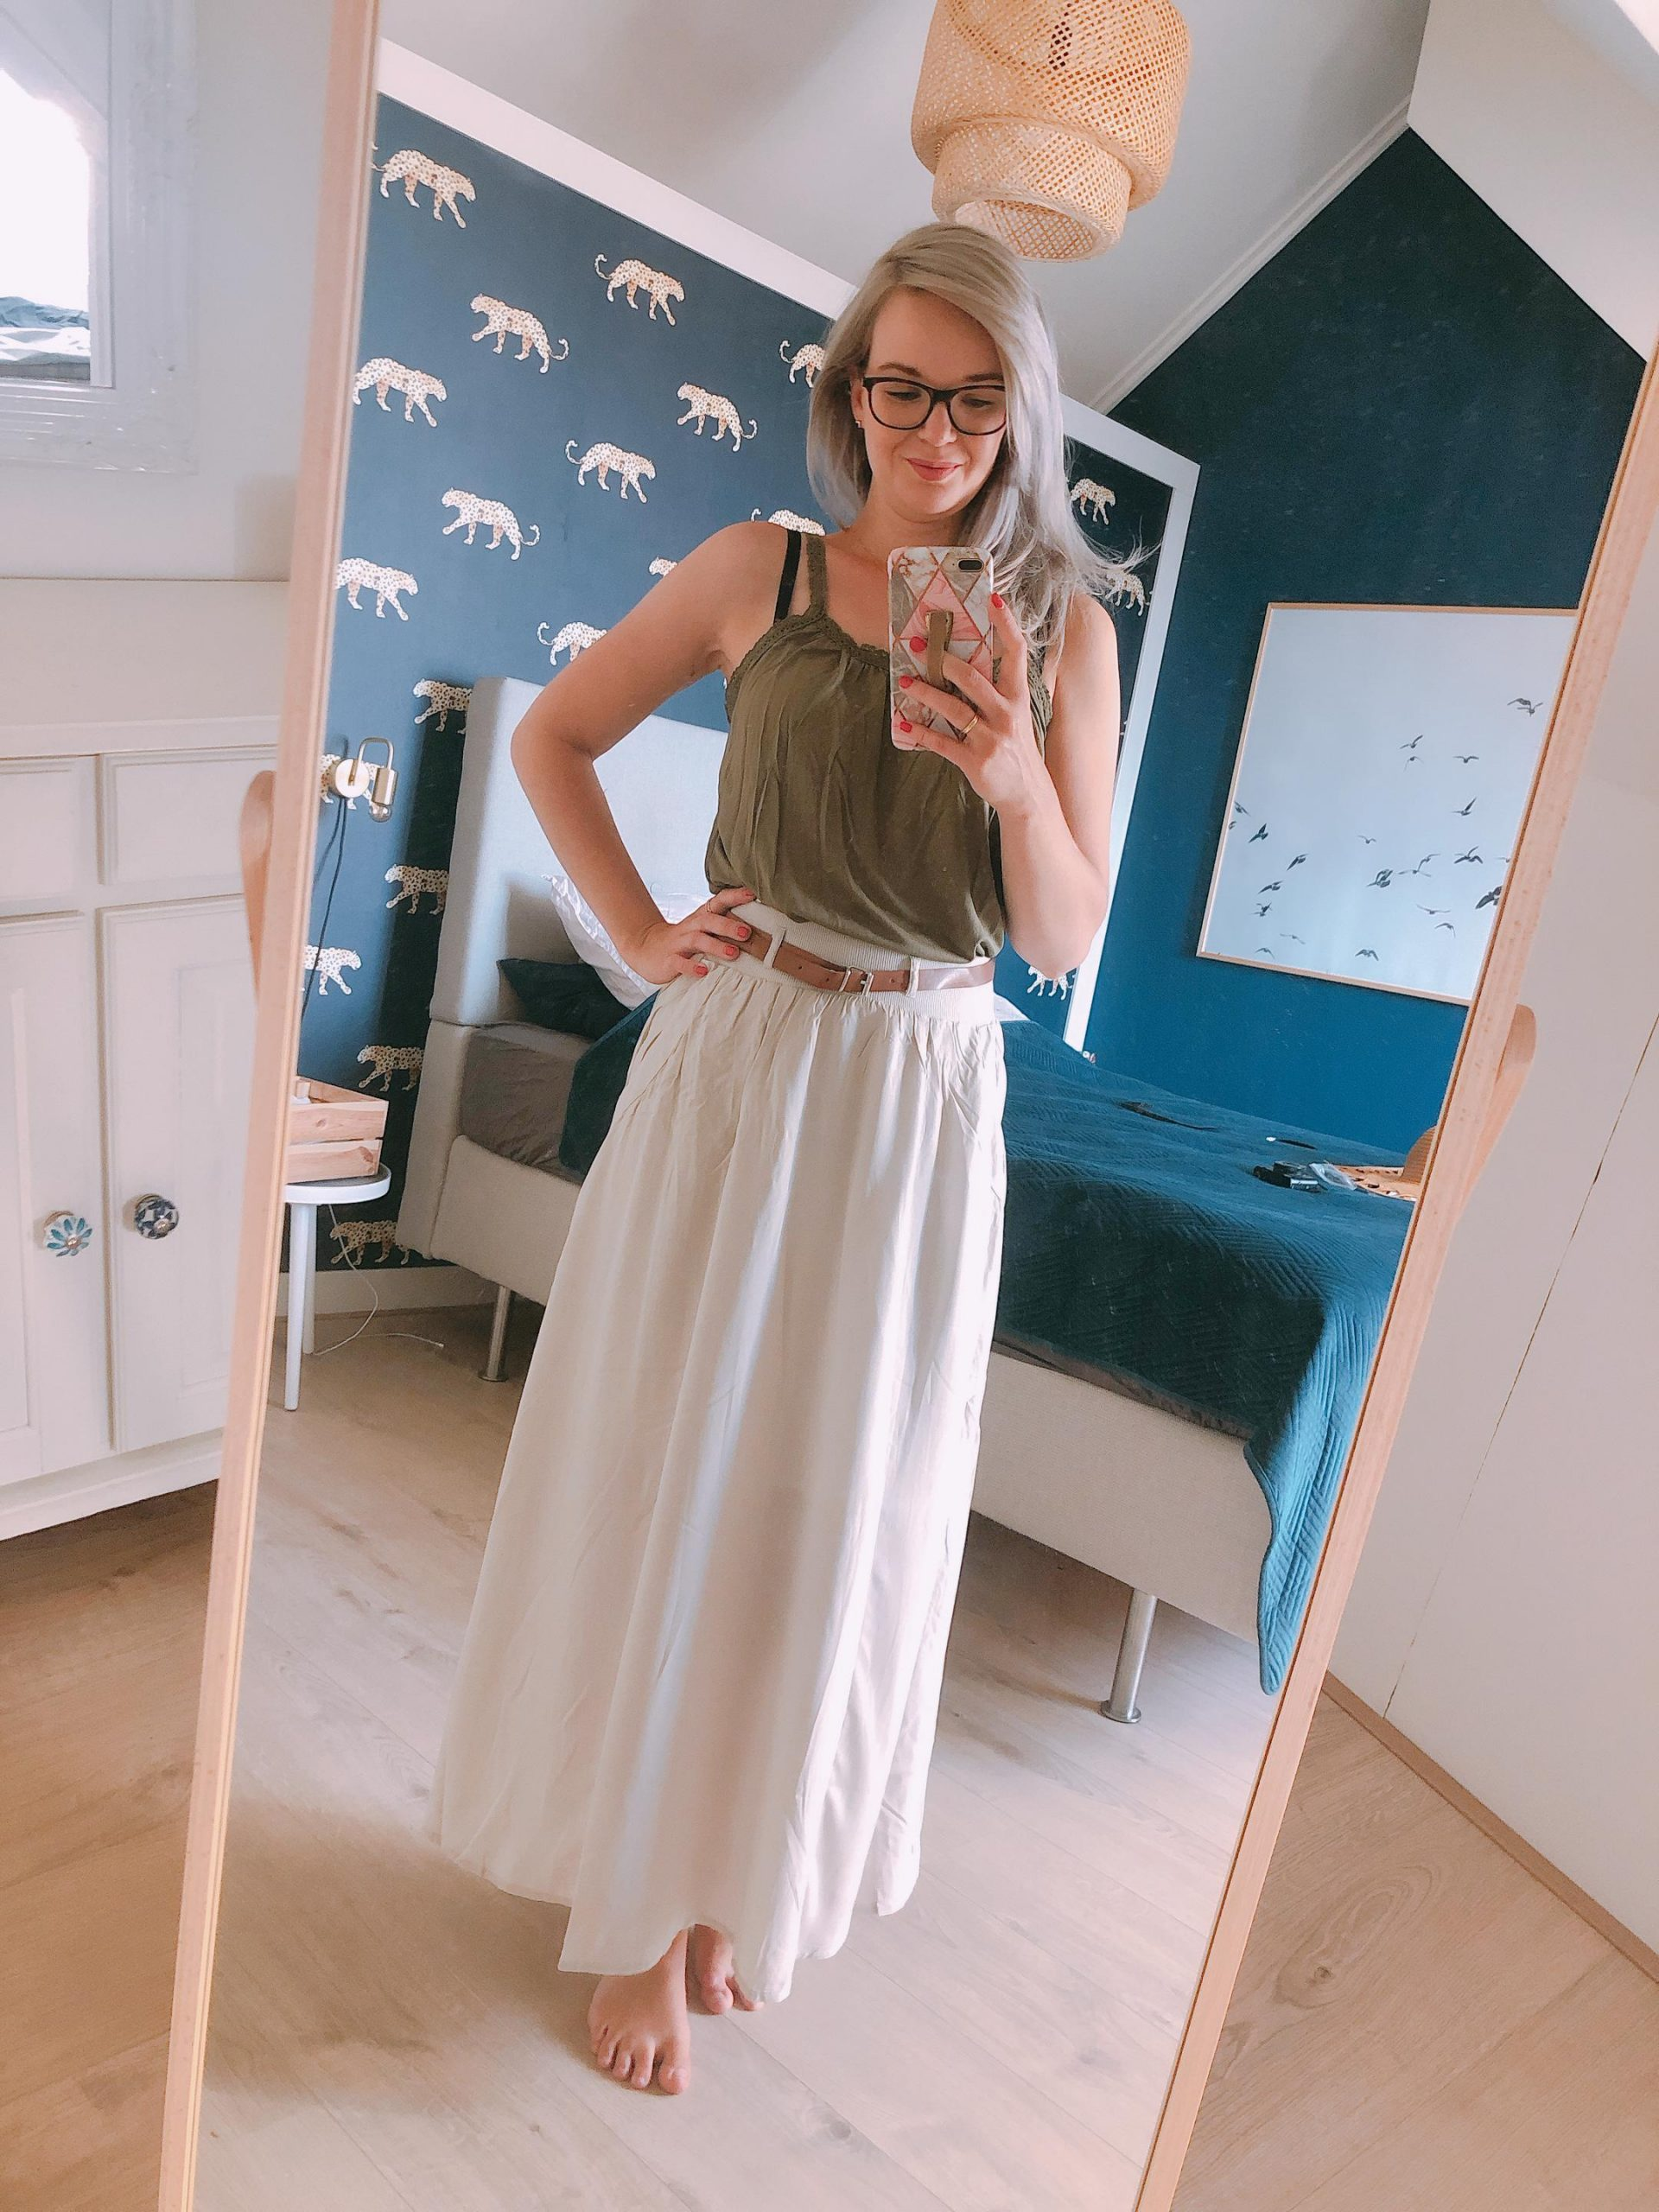 IMG 9663 2160x2880 1 scaled - 3x Zomerse Bohemien Outfits (Shoplog)!